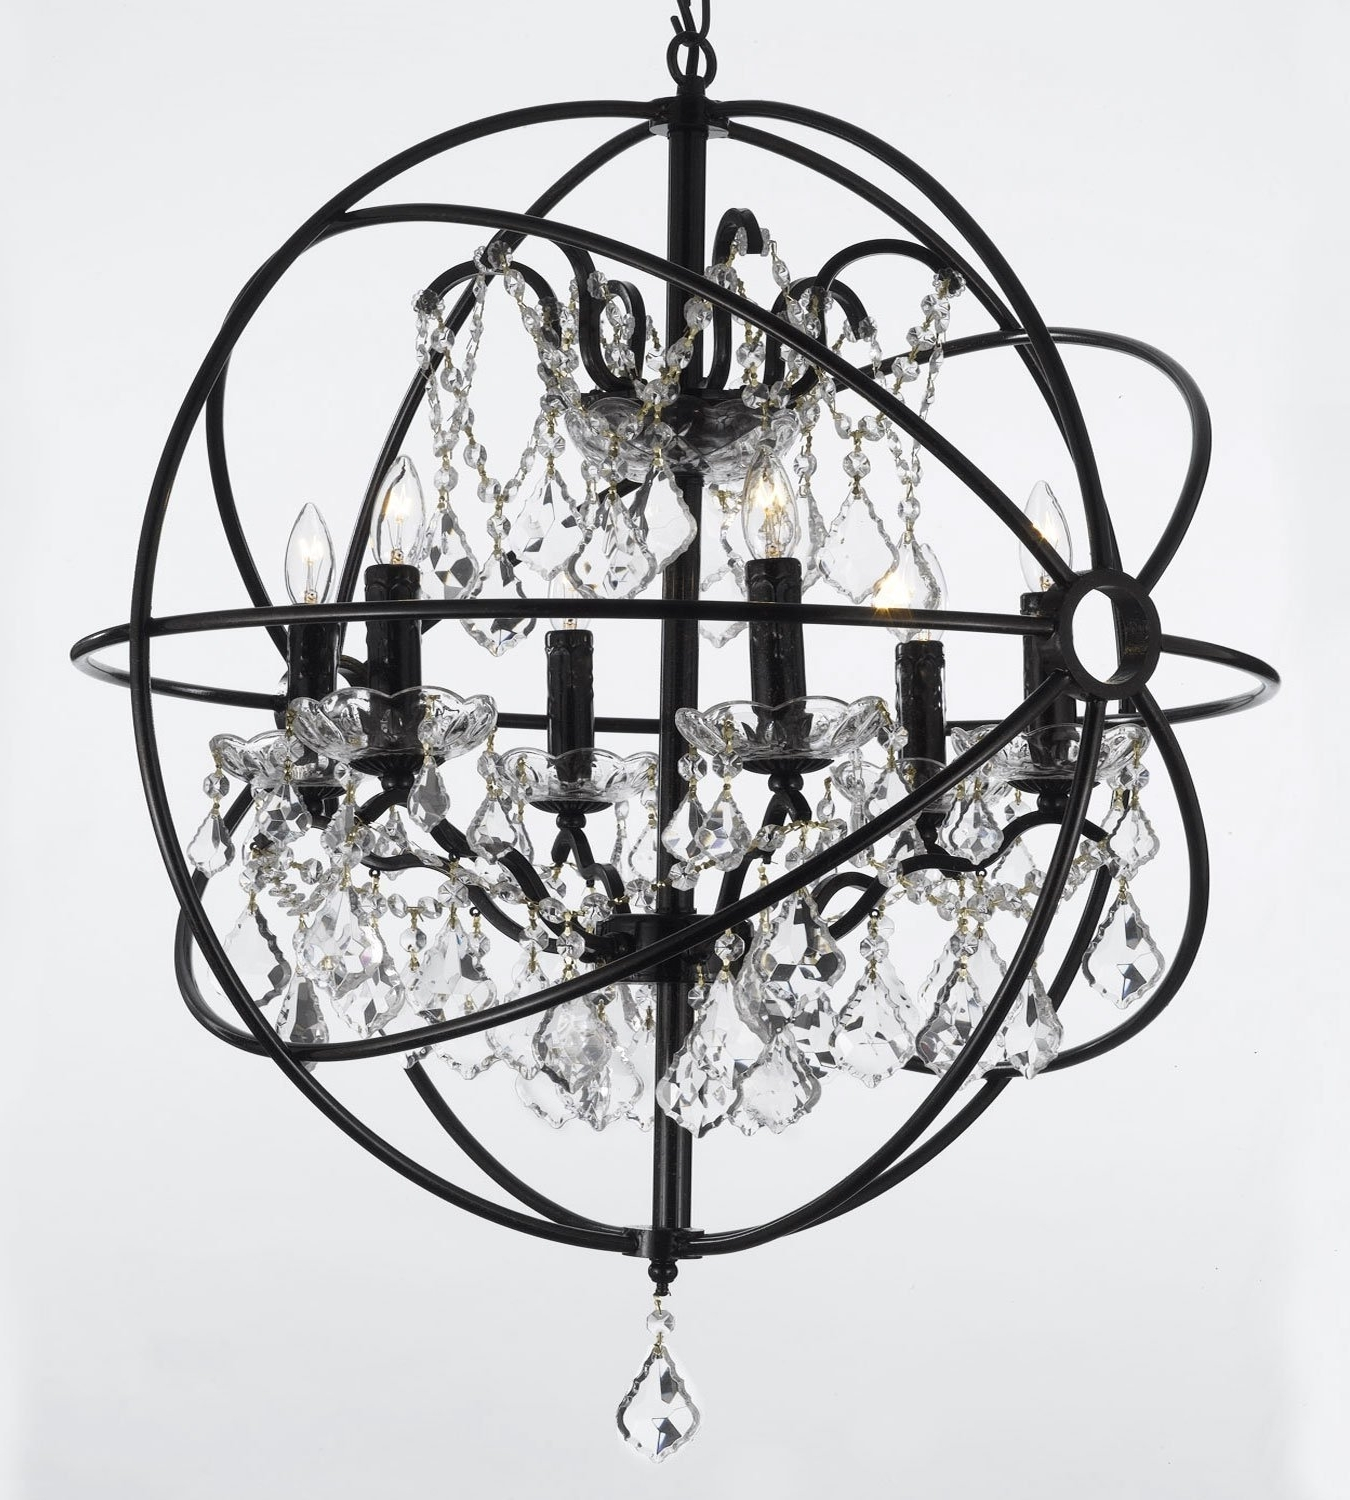 Modern Wrought Iron Chandeliers Inside Newest Foucault's Orb Wrought Iron Crystal Chandelier Lighting Country (View 5 of 15)